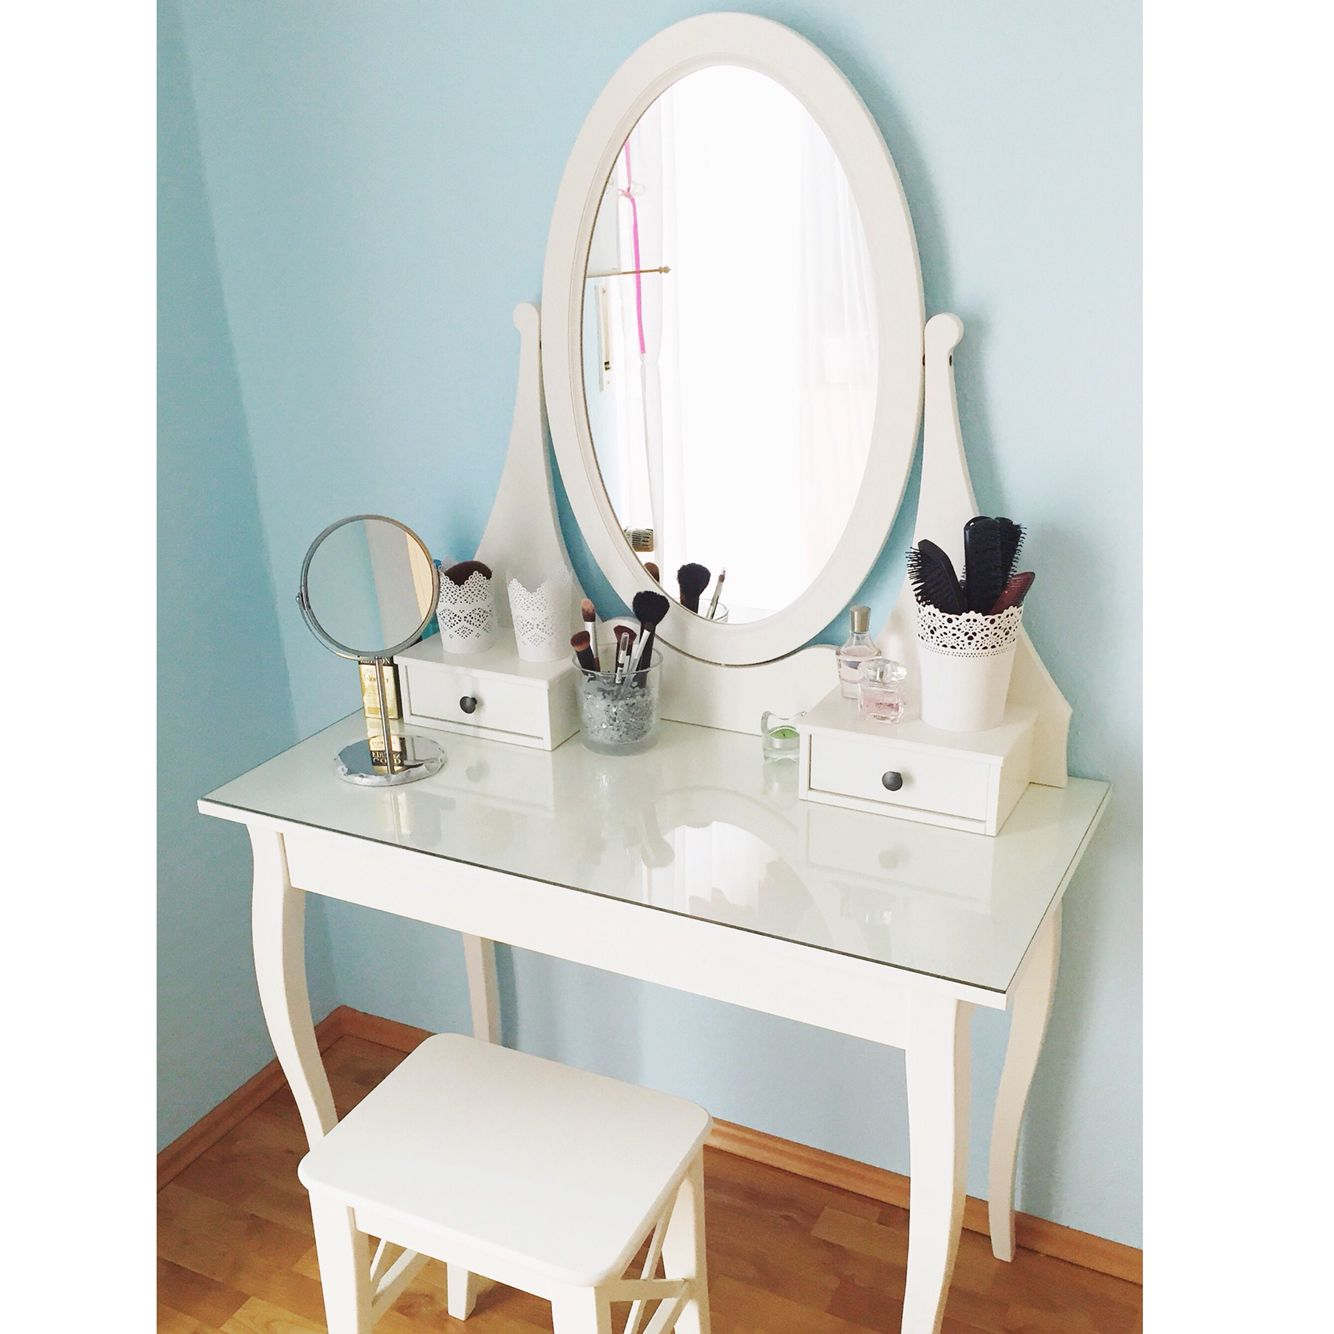 I love this desk from IKEA, it's perfect. Make-up desk from Hemnes | Ikea | Dressing Table | Make-up Storage